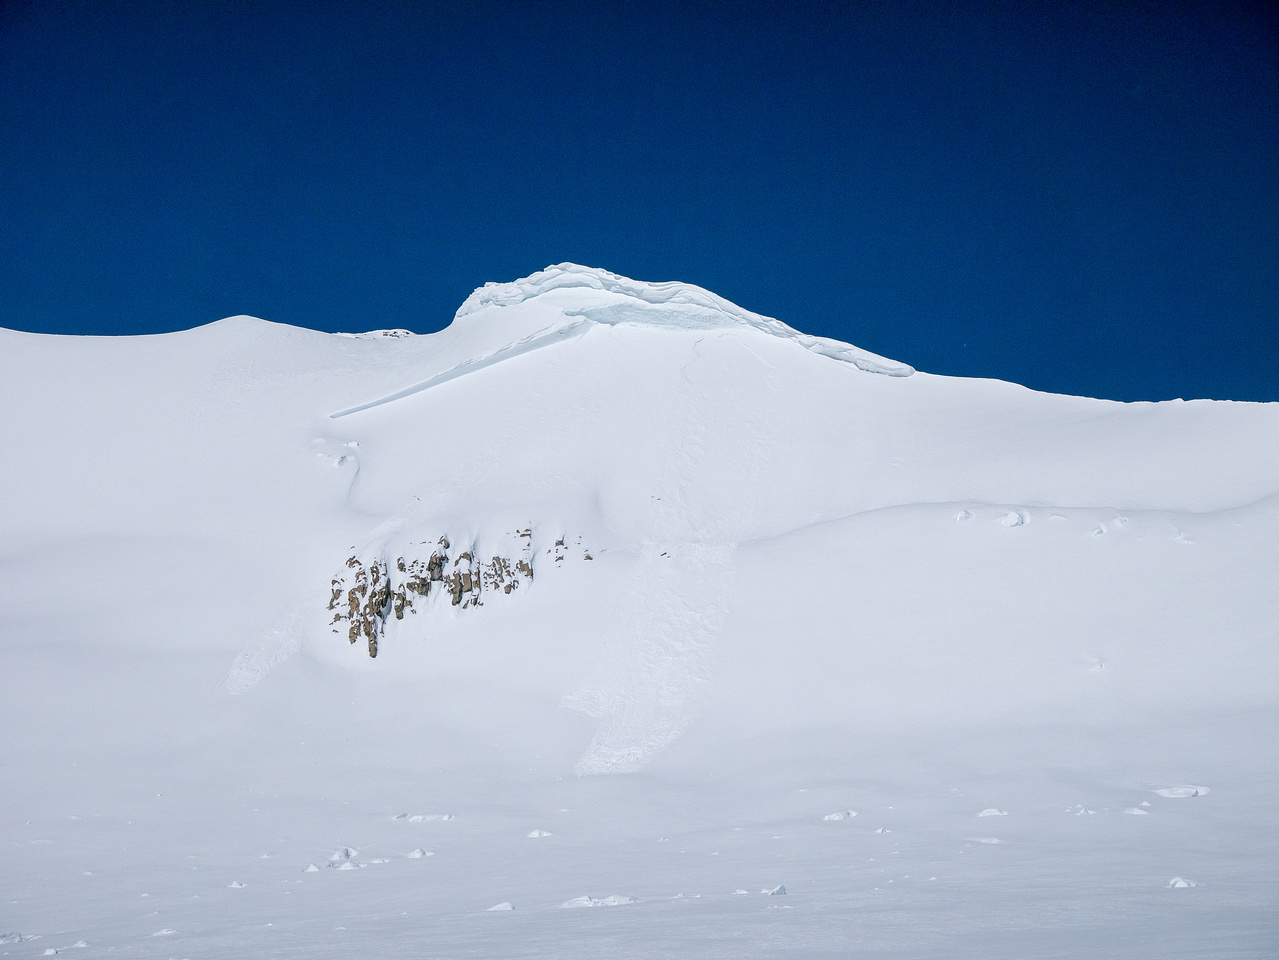 The massive cornice may not look like much from here but that fracture line is at least 20 feet high!